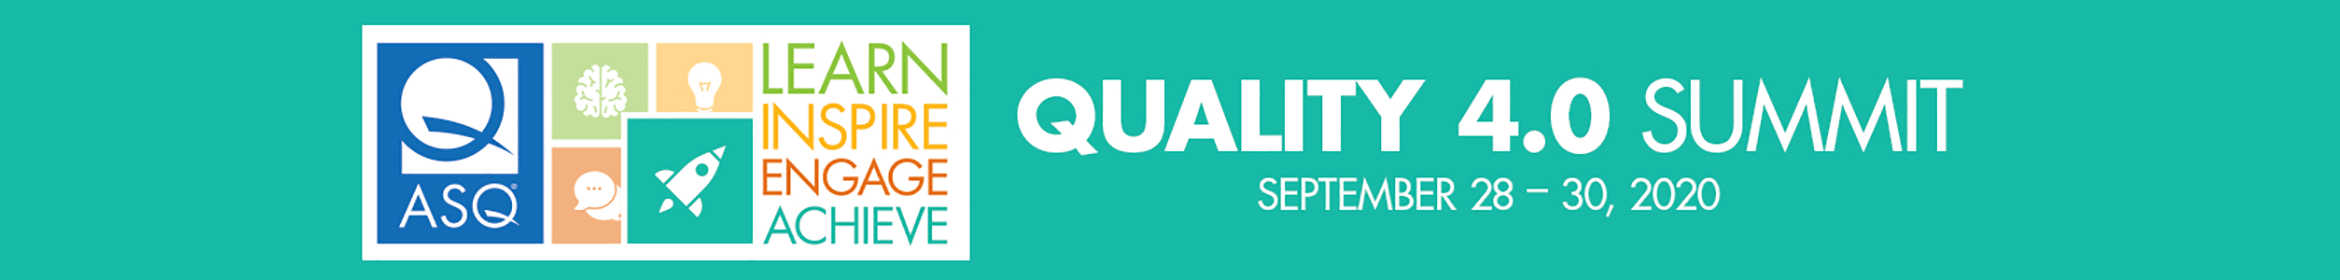 2020 Quality 4.0 Summit Main banner